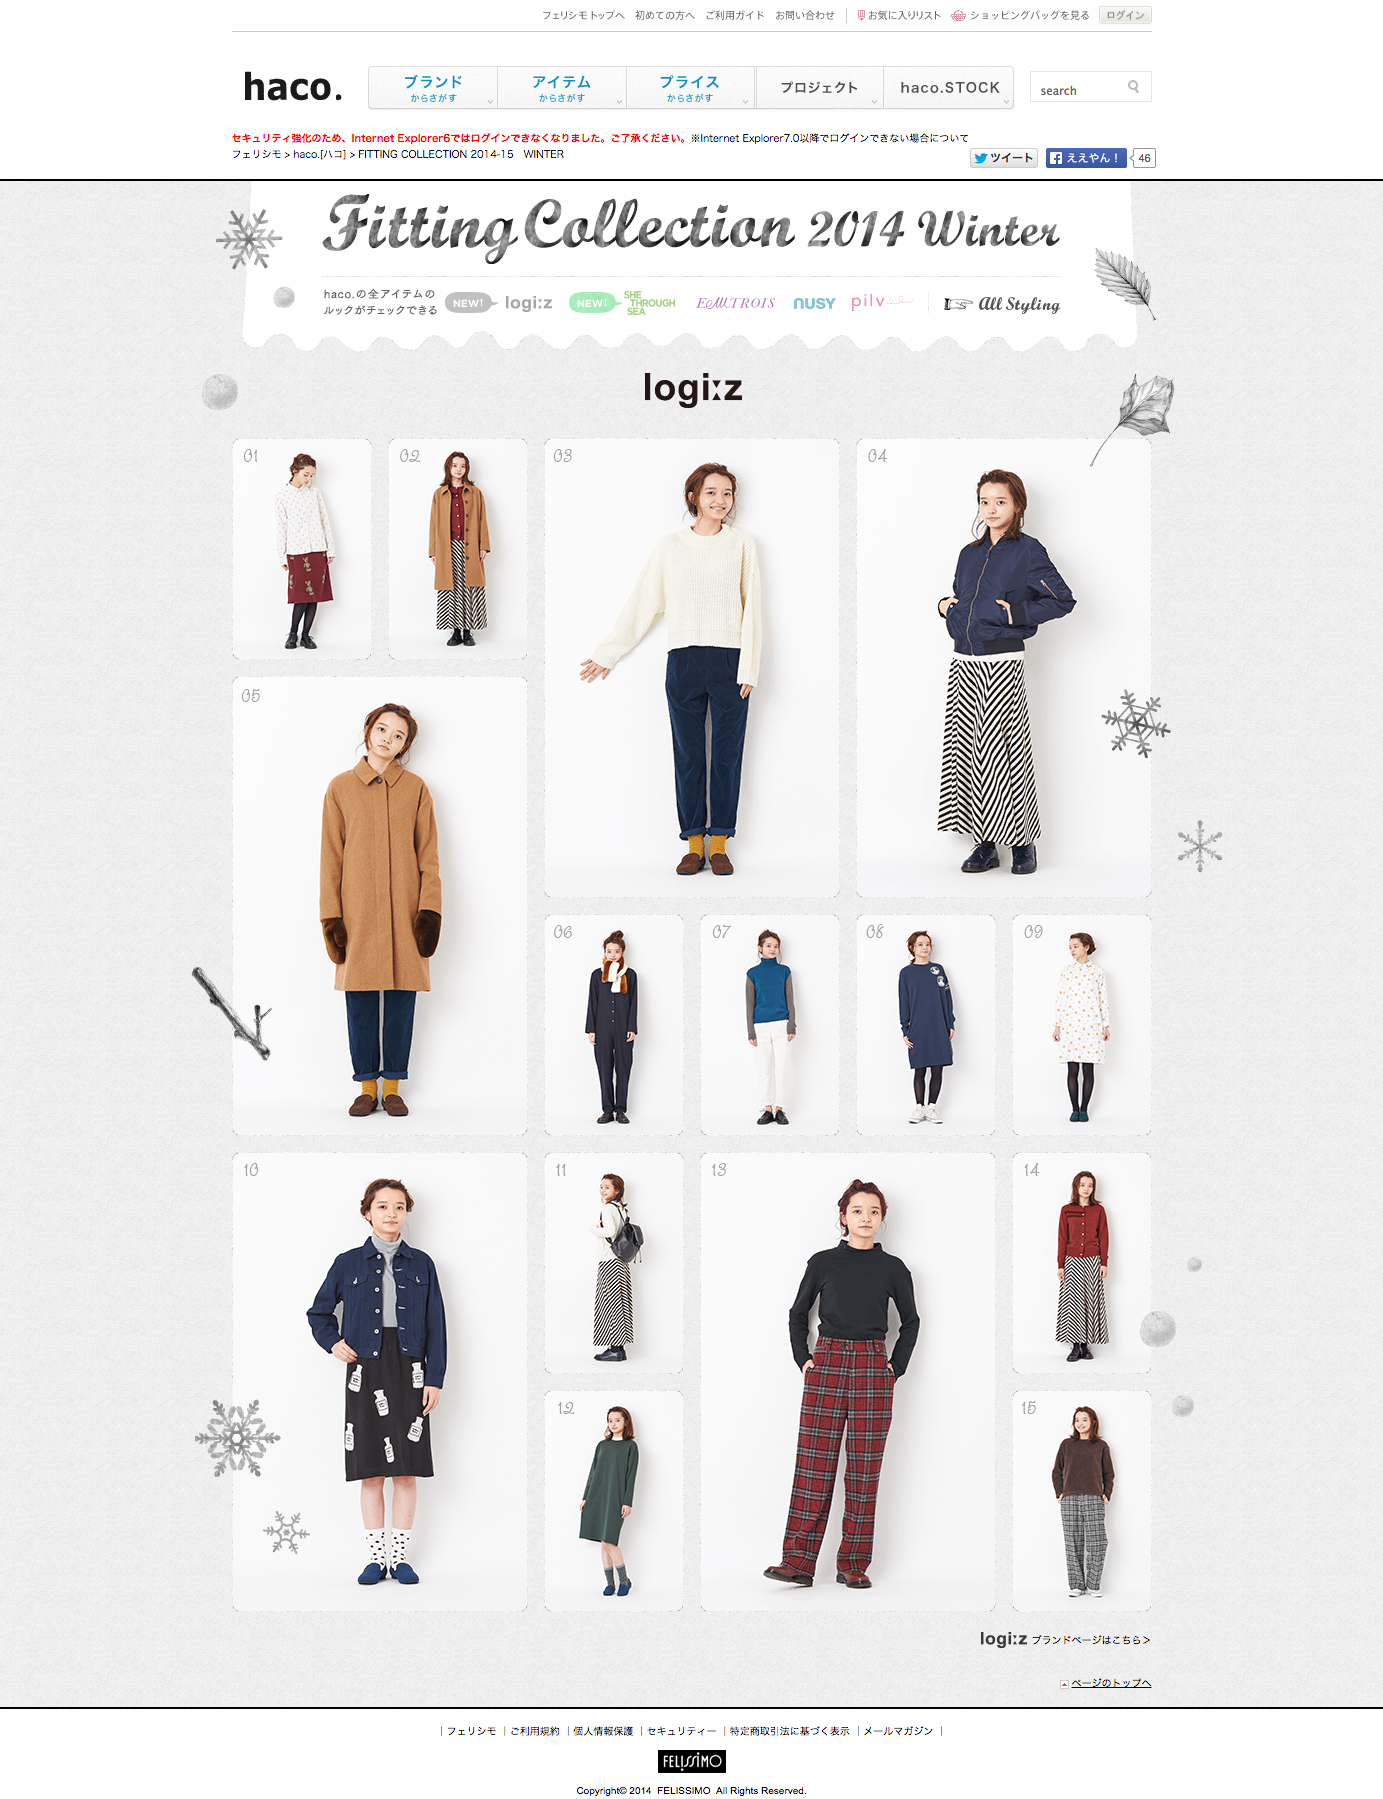 http://www.felissimo.co.jp/haco/141105_fitting/list/#1_0